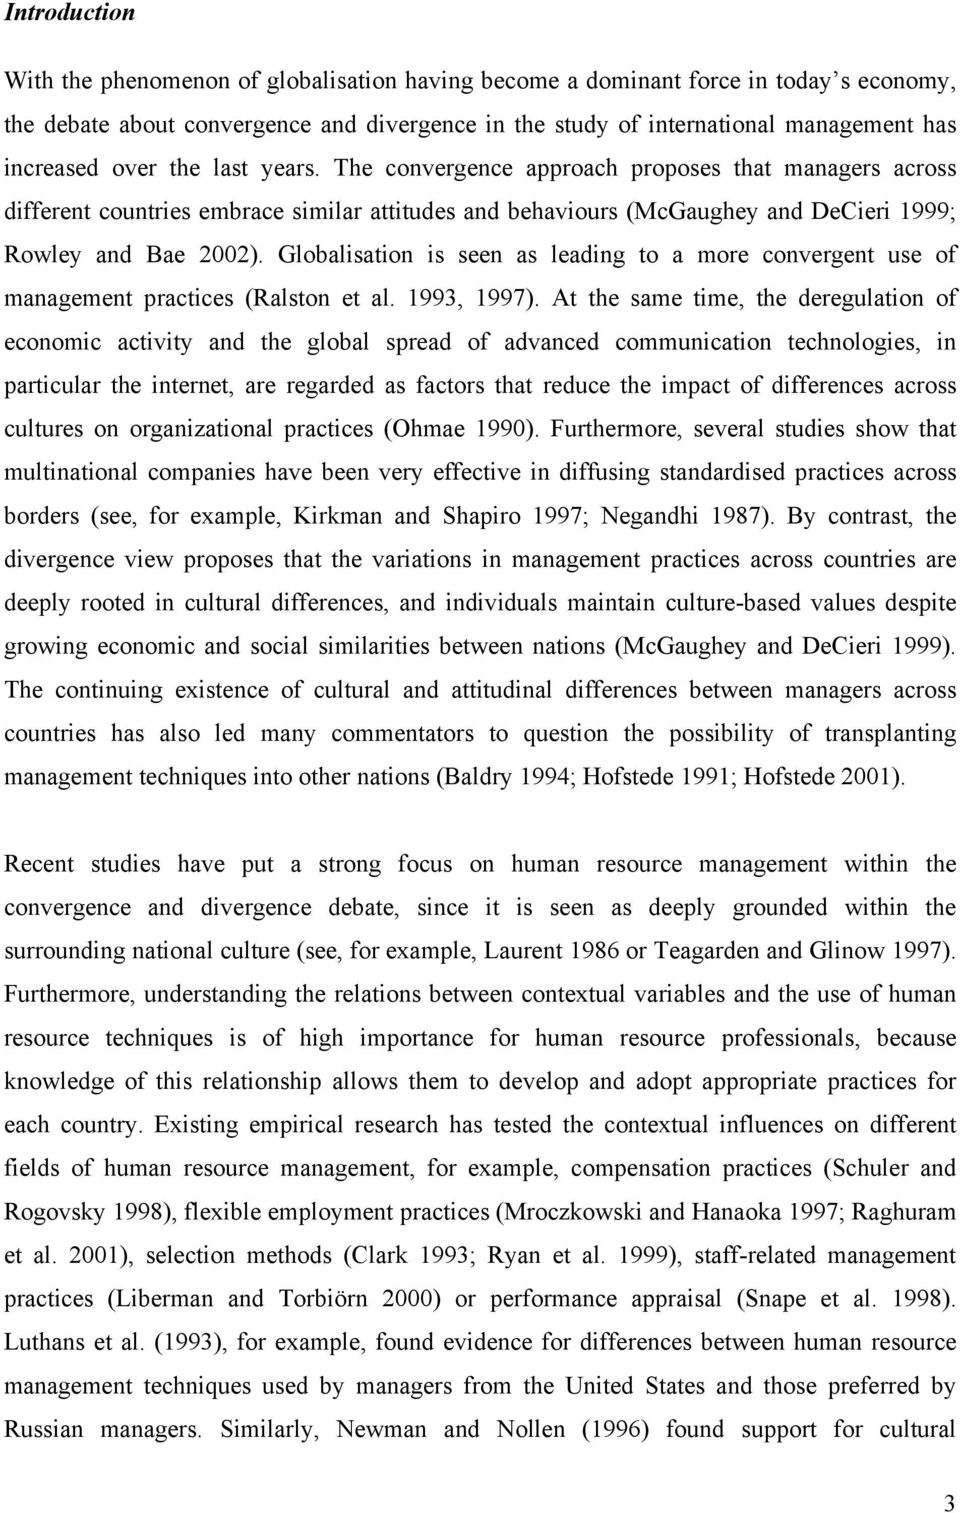 Globalisation is seen as leading to a more convergent use of management practices (Ralston et al. 1993, 1997).